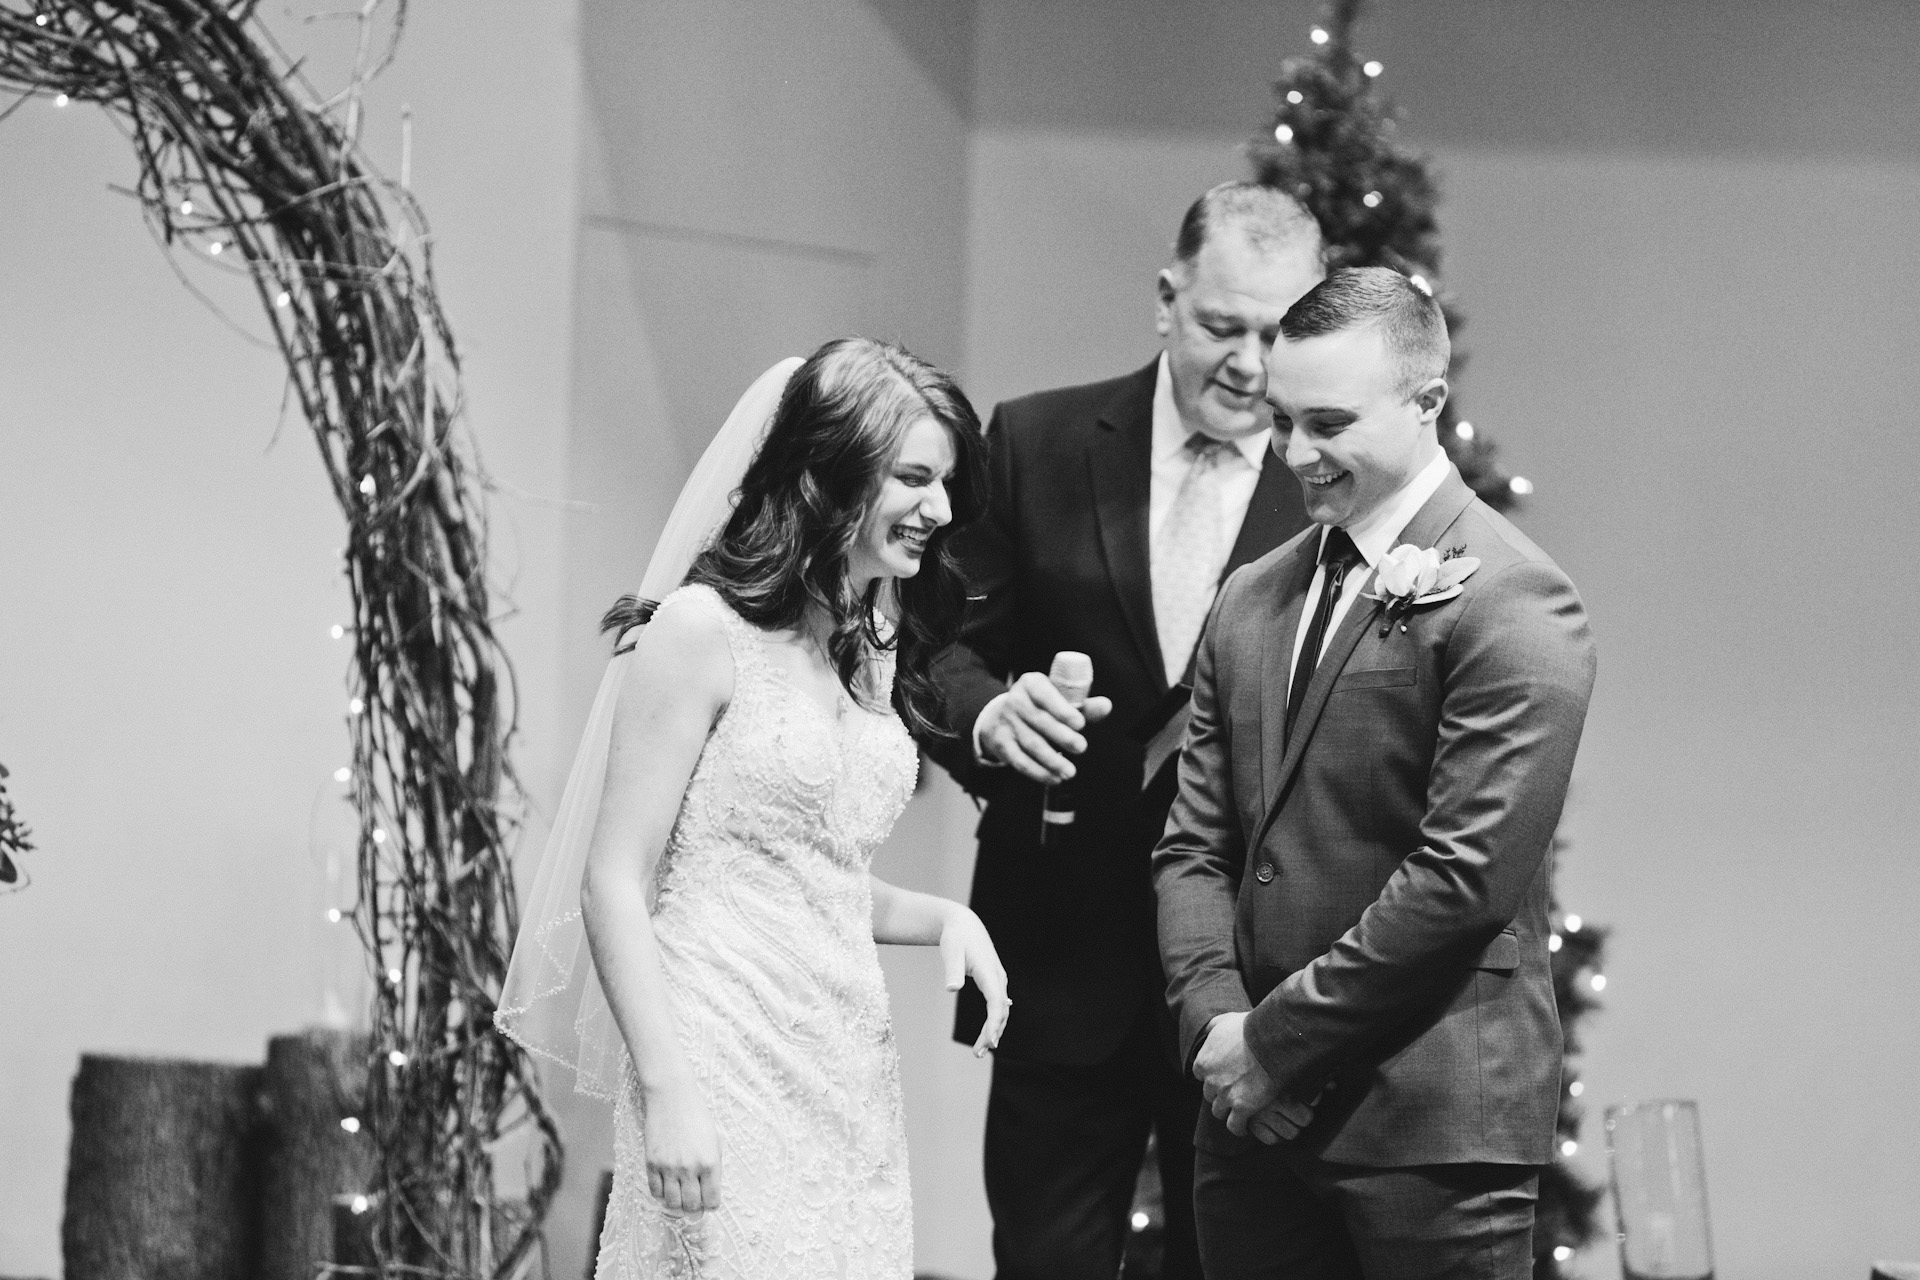 bride-surprises-groom-with-song-she-wrote-for-him